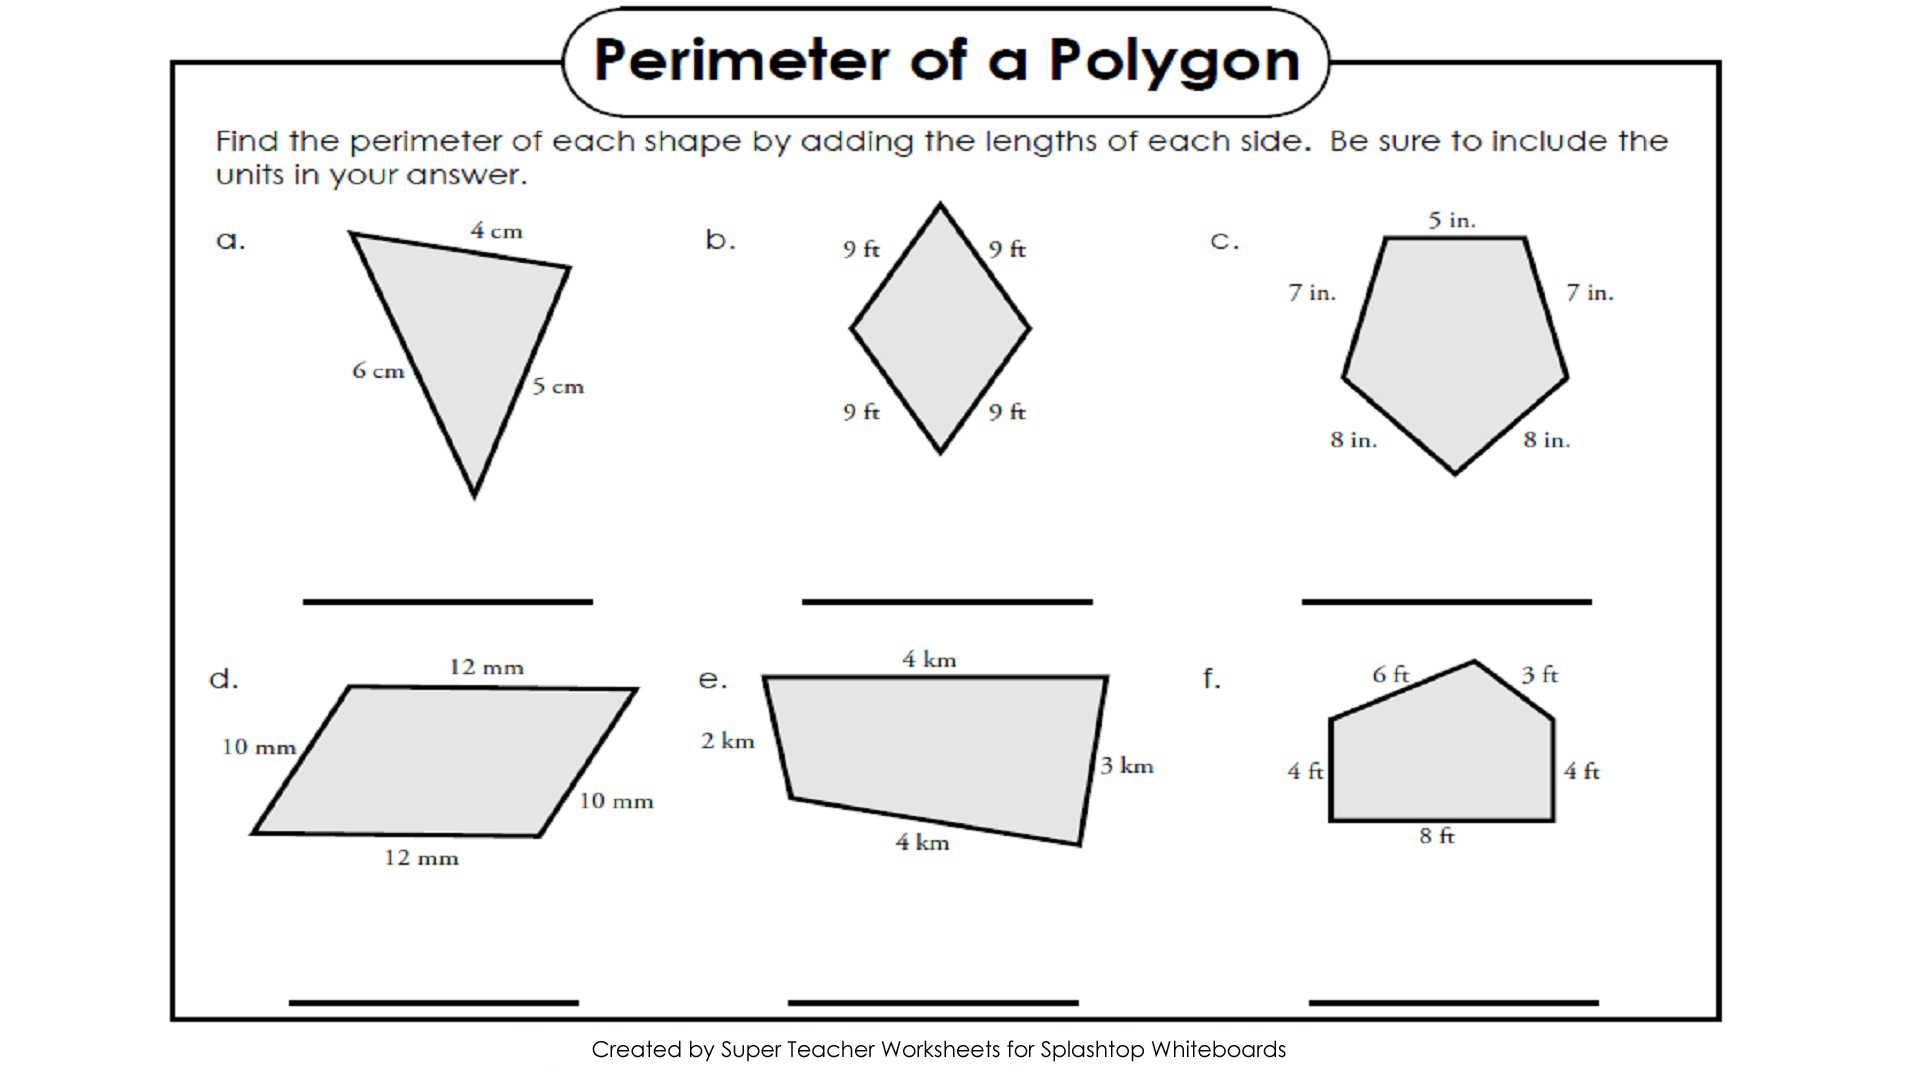 worksheet Area And Perimeter Of Polygons Worksheet splashtop whiteboard background graphics perimeter of polygons